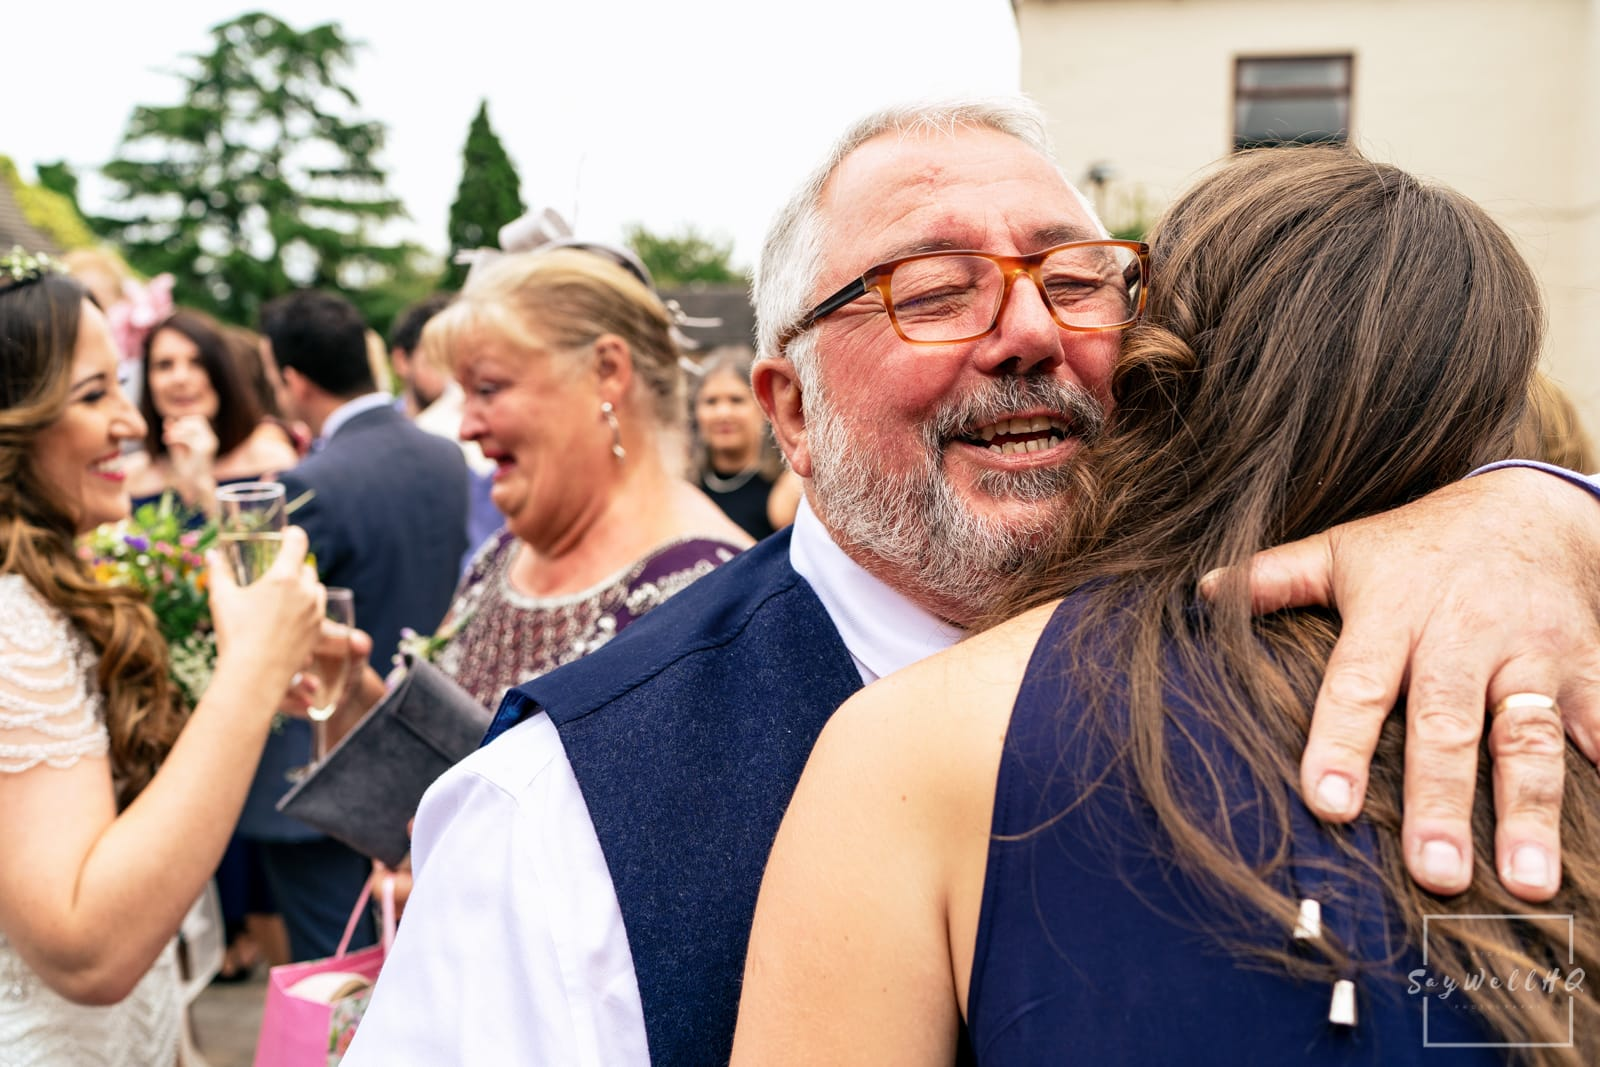 Mapperley Farm Wedding Photography + Mapperley Farm Wedding Photographer + wedding guests celebrate in the courtyard after the wedding ceremony in a converted barn